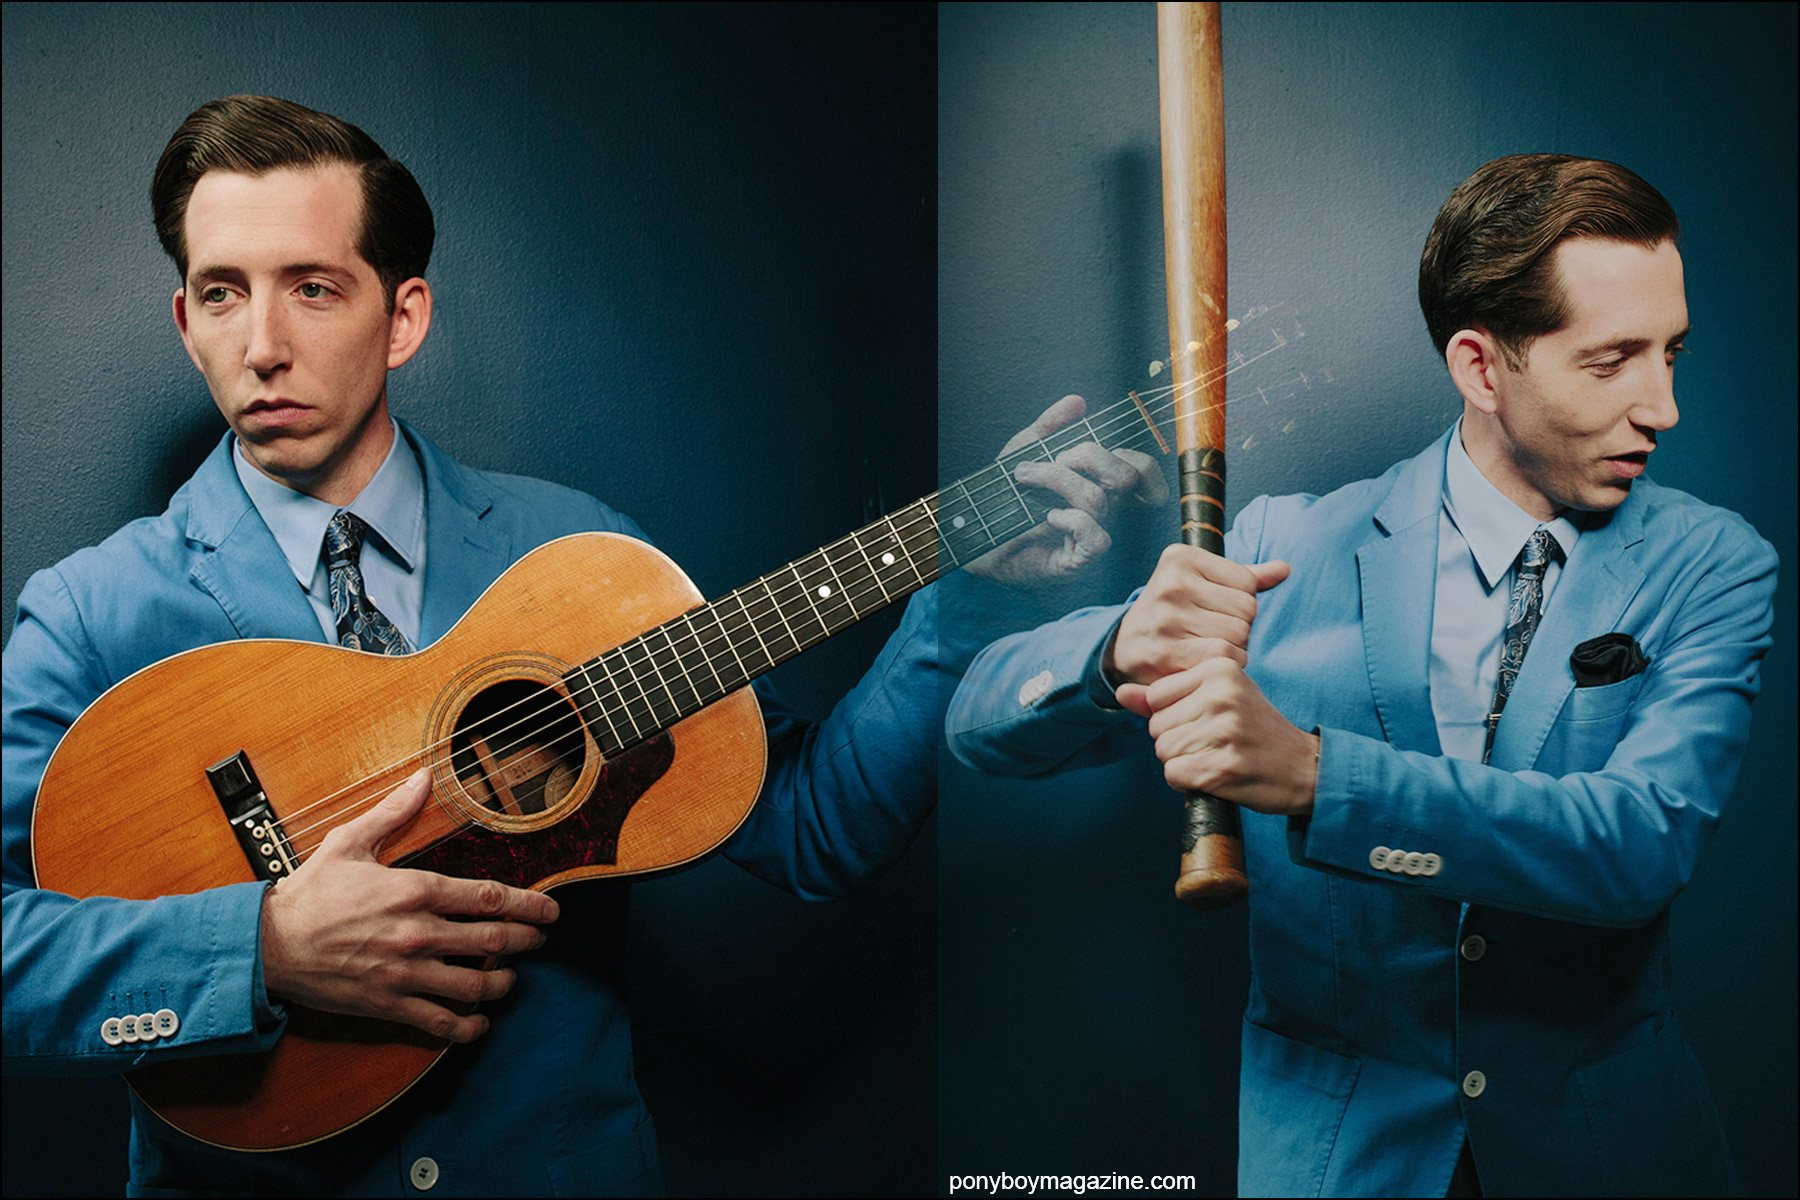 Portraits of musician Pokey LaFarge by photographer Joshua Black Wilkins. Ponyboy magazine.